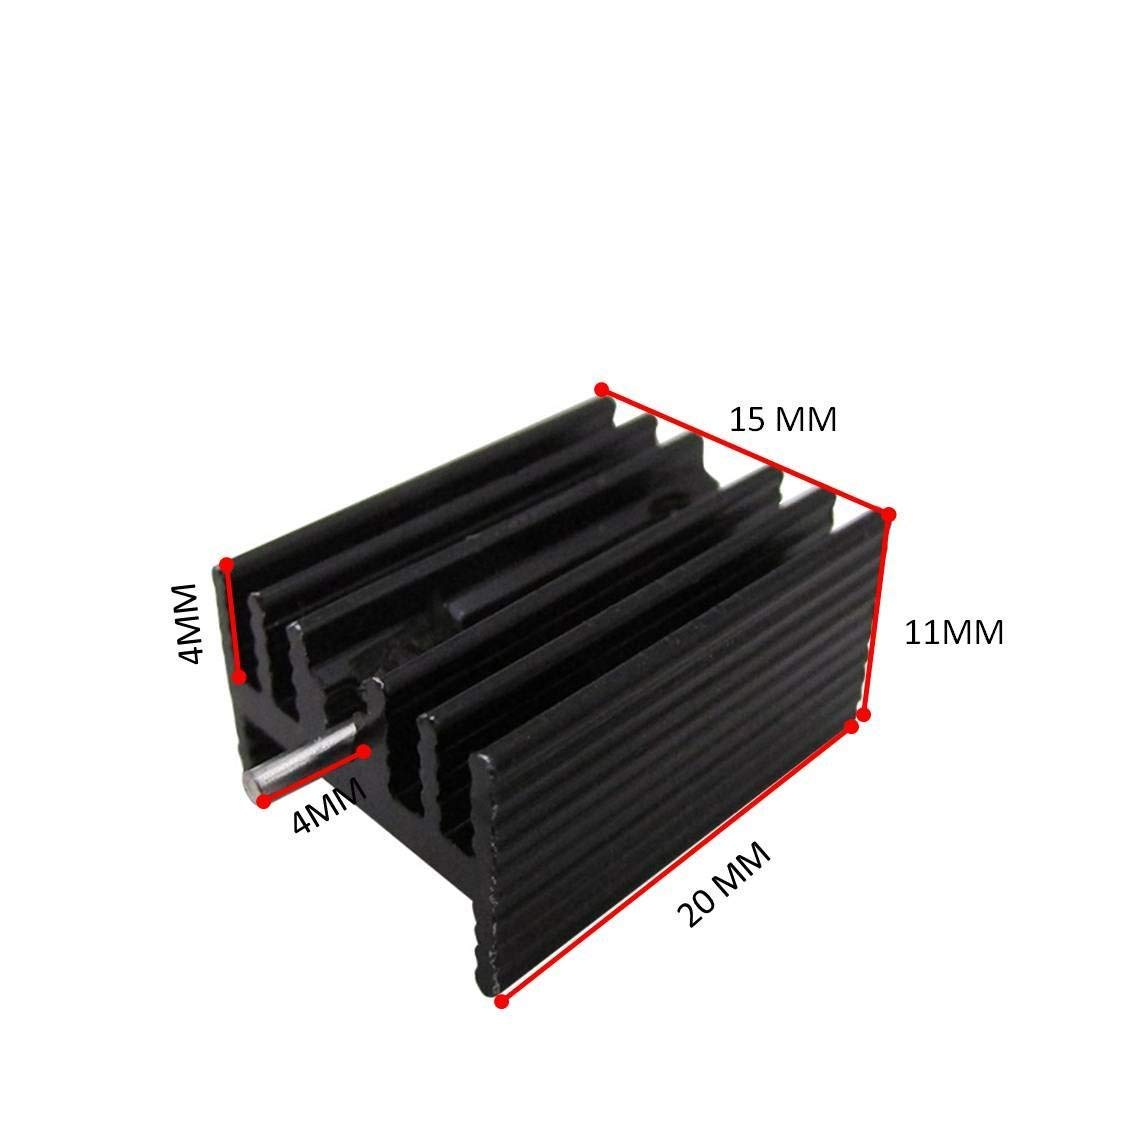 Easycargo TO-220 Heatsink + Insulator/Mounting kits (TO220 Heat sink +Screw+Washer+Bushing+Insulator rubberized Silicone) for LM78XX voltage regulator, MOSFET transistor 20mmx15mmx11mm (Black 20 pack) by Easycargo (Image #2)